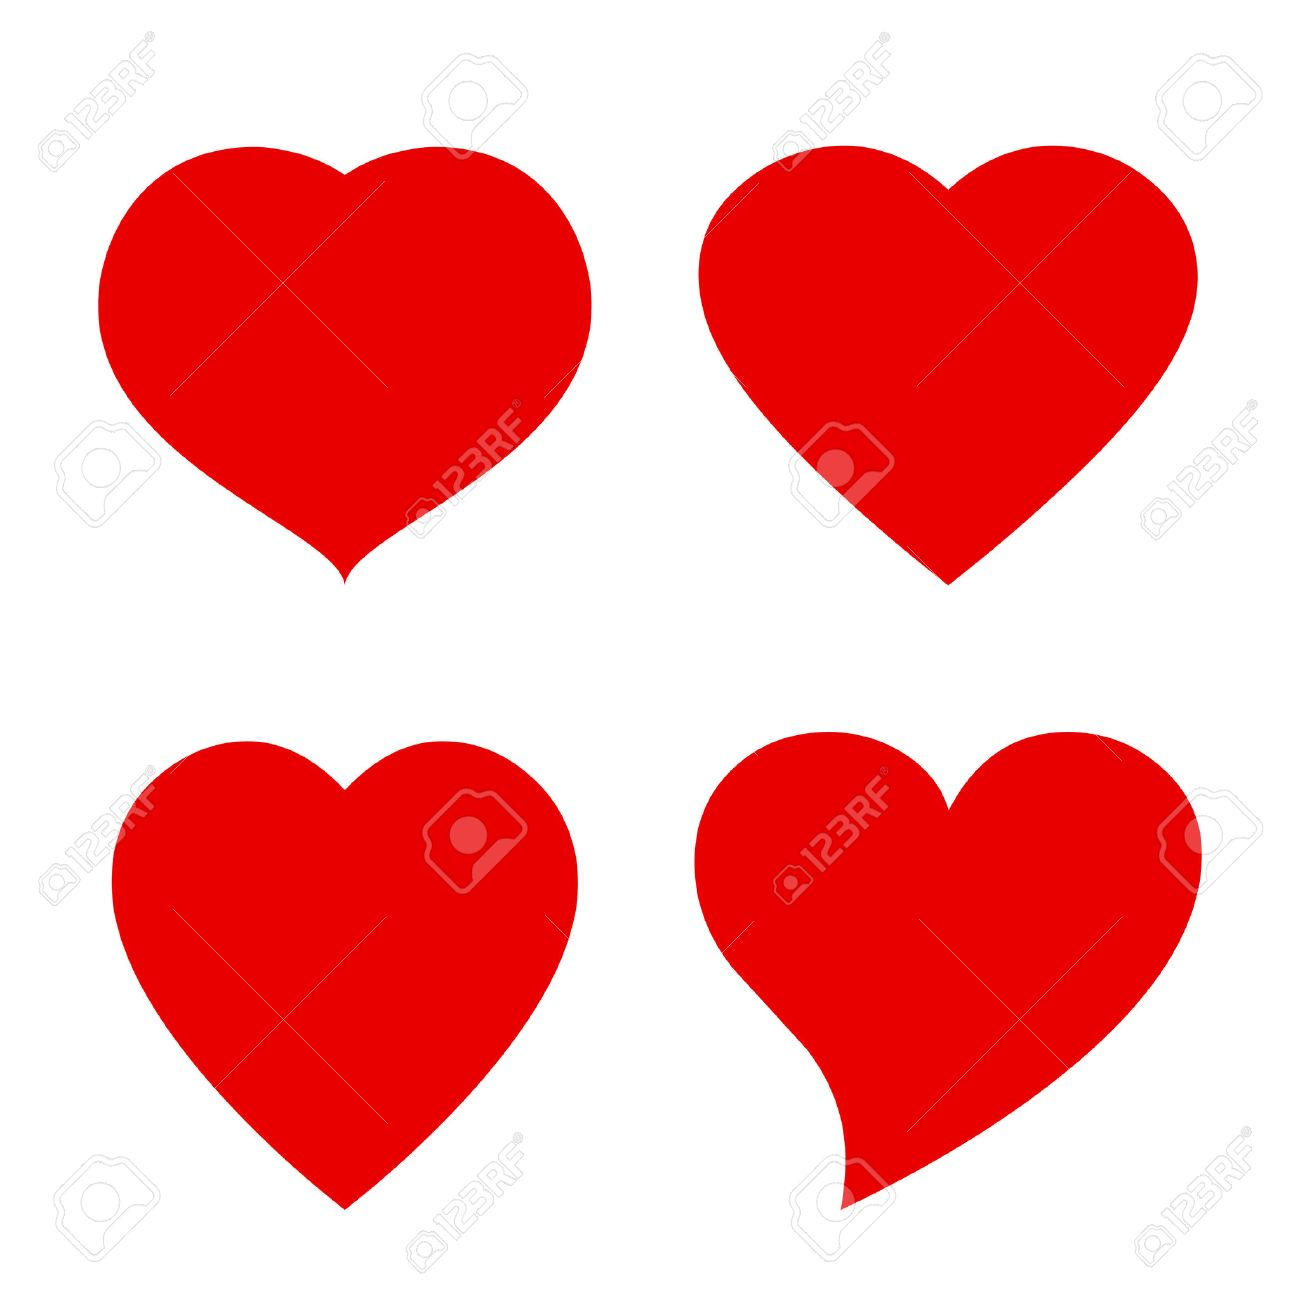 vector heart shape icon royalty free cliparts vectors and stock rh 123rf com vector heart shape png vector heart shape png